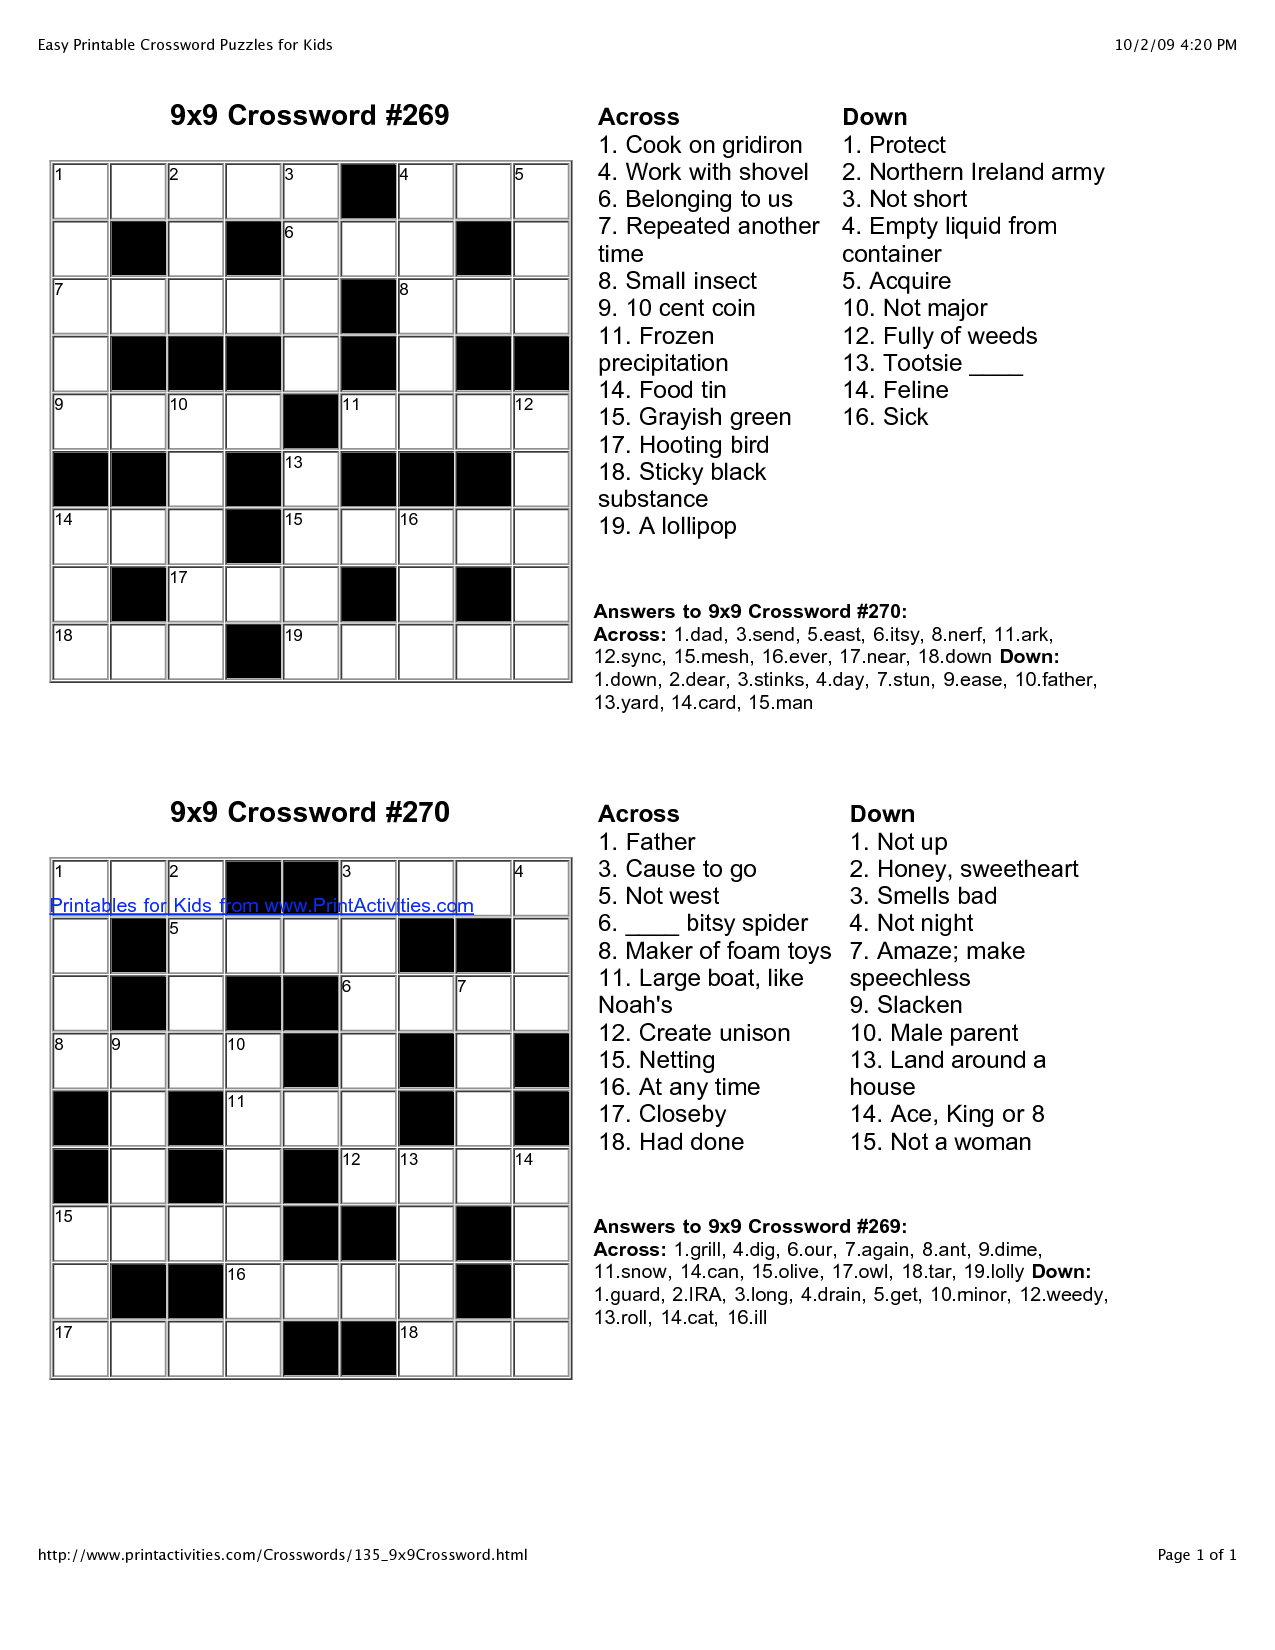 Easy Crossword Puzzles | I'm Going To Be An Slp! | Kids Crossword - Printable Simple Crossword Puzzles